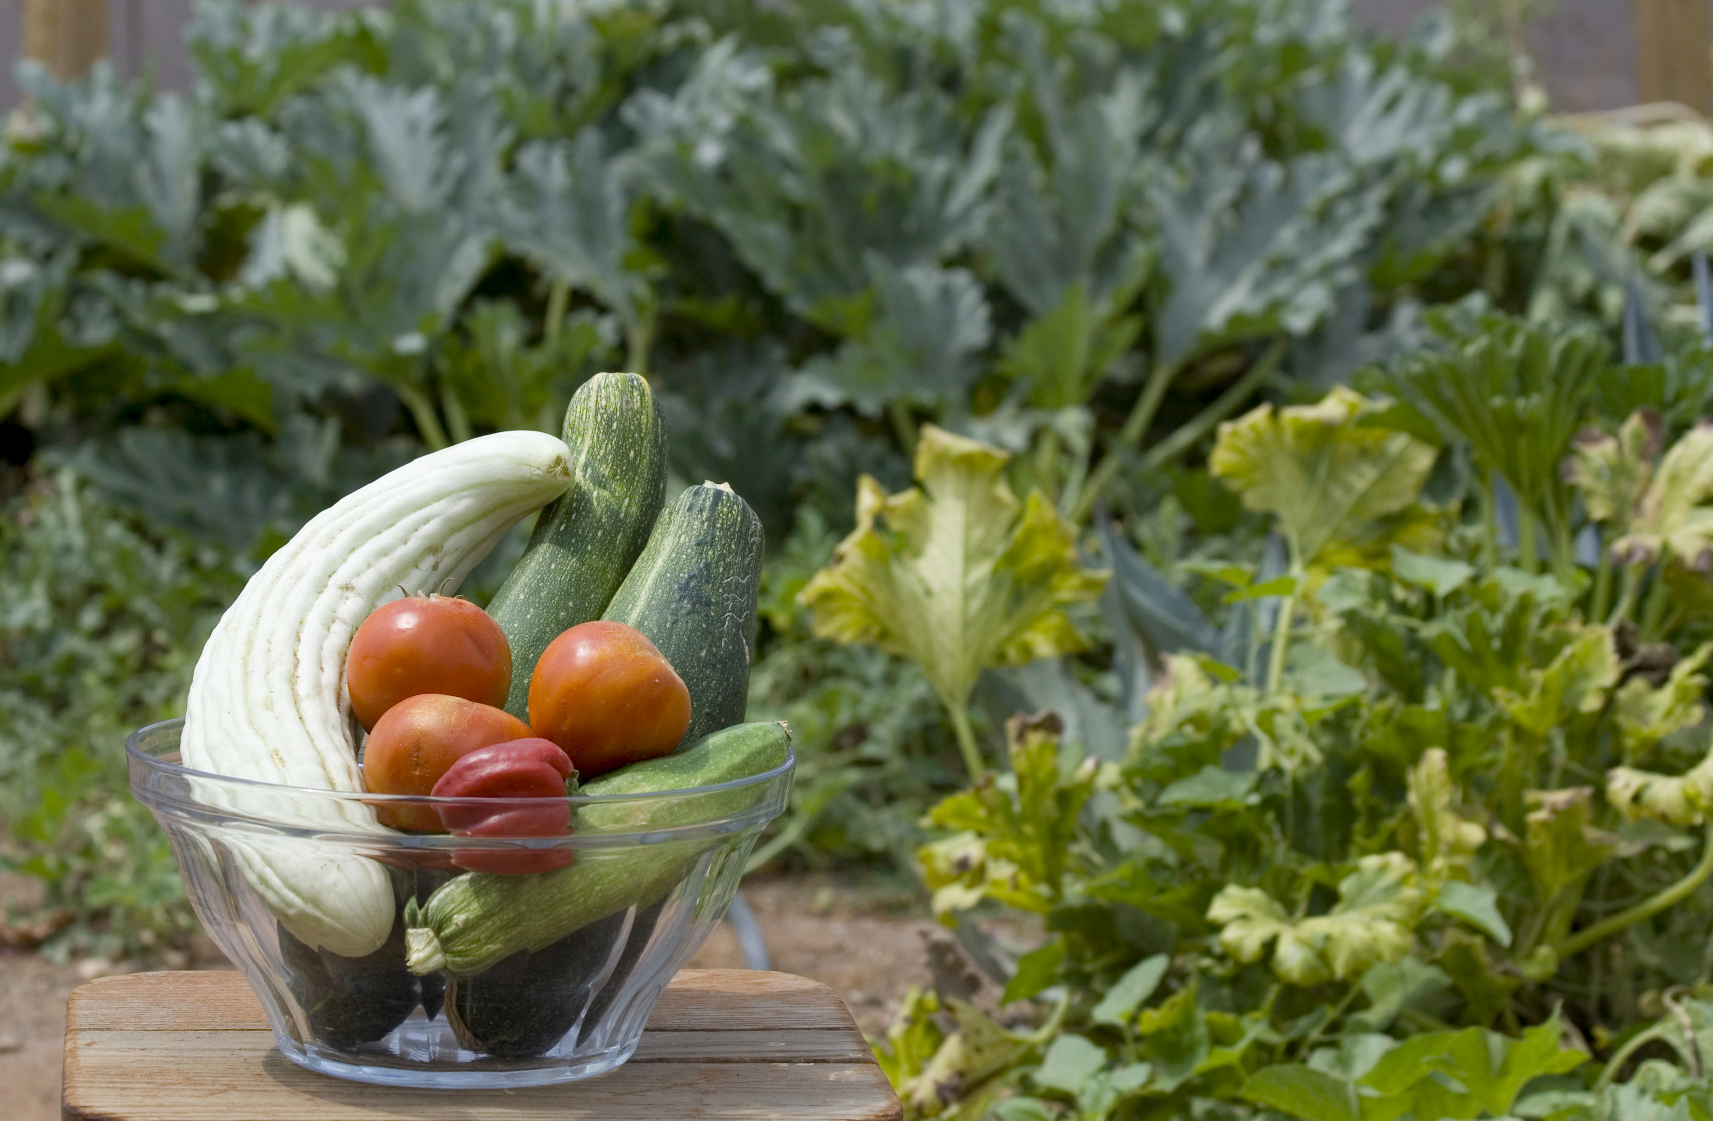 squash, tomatoes, vegetables in bowl